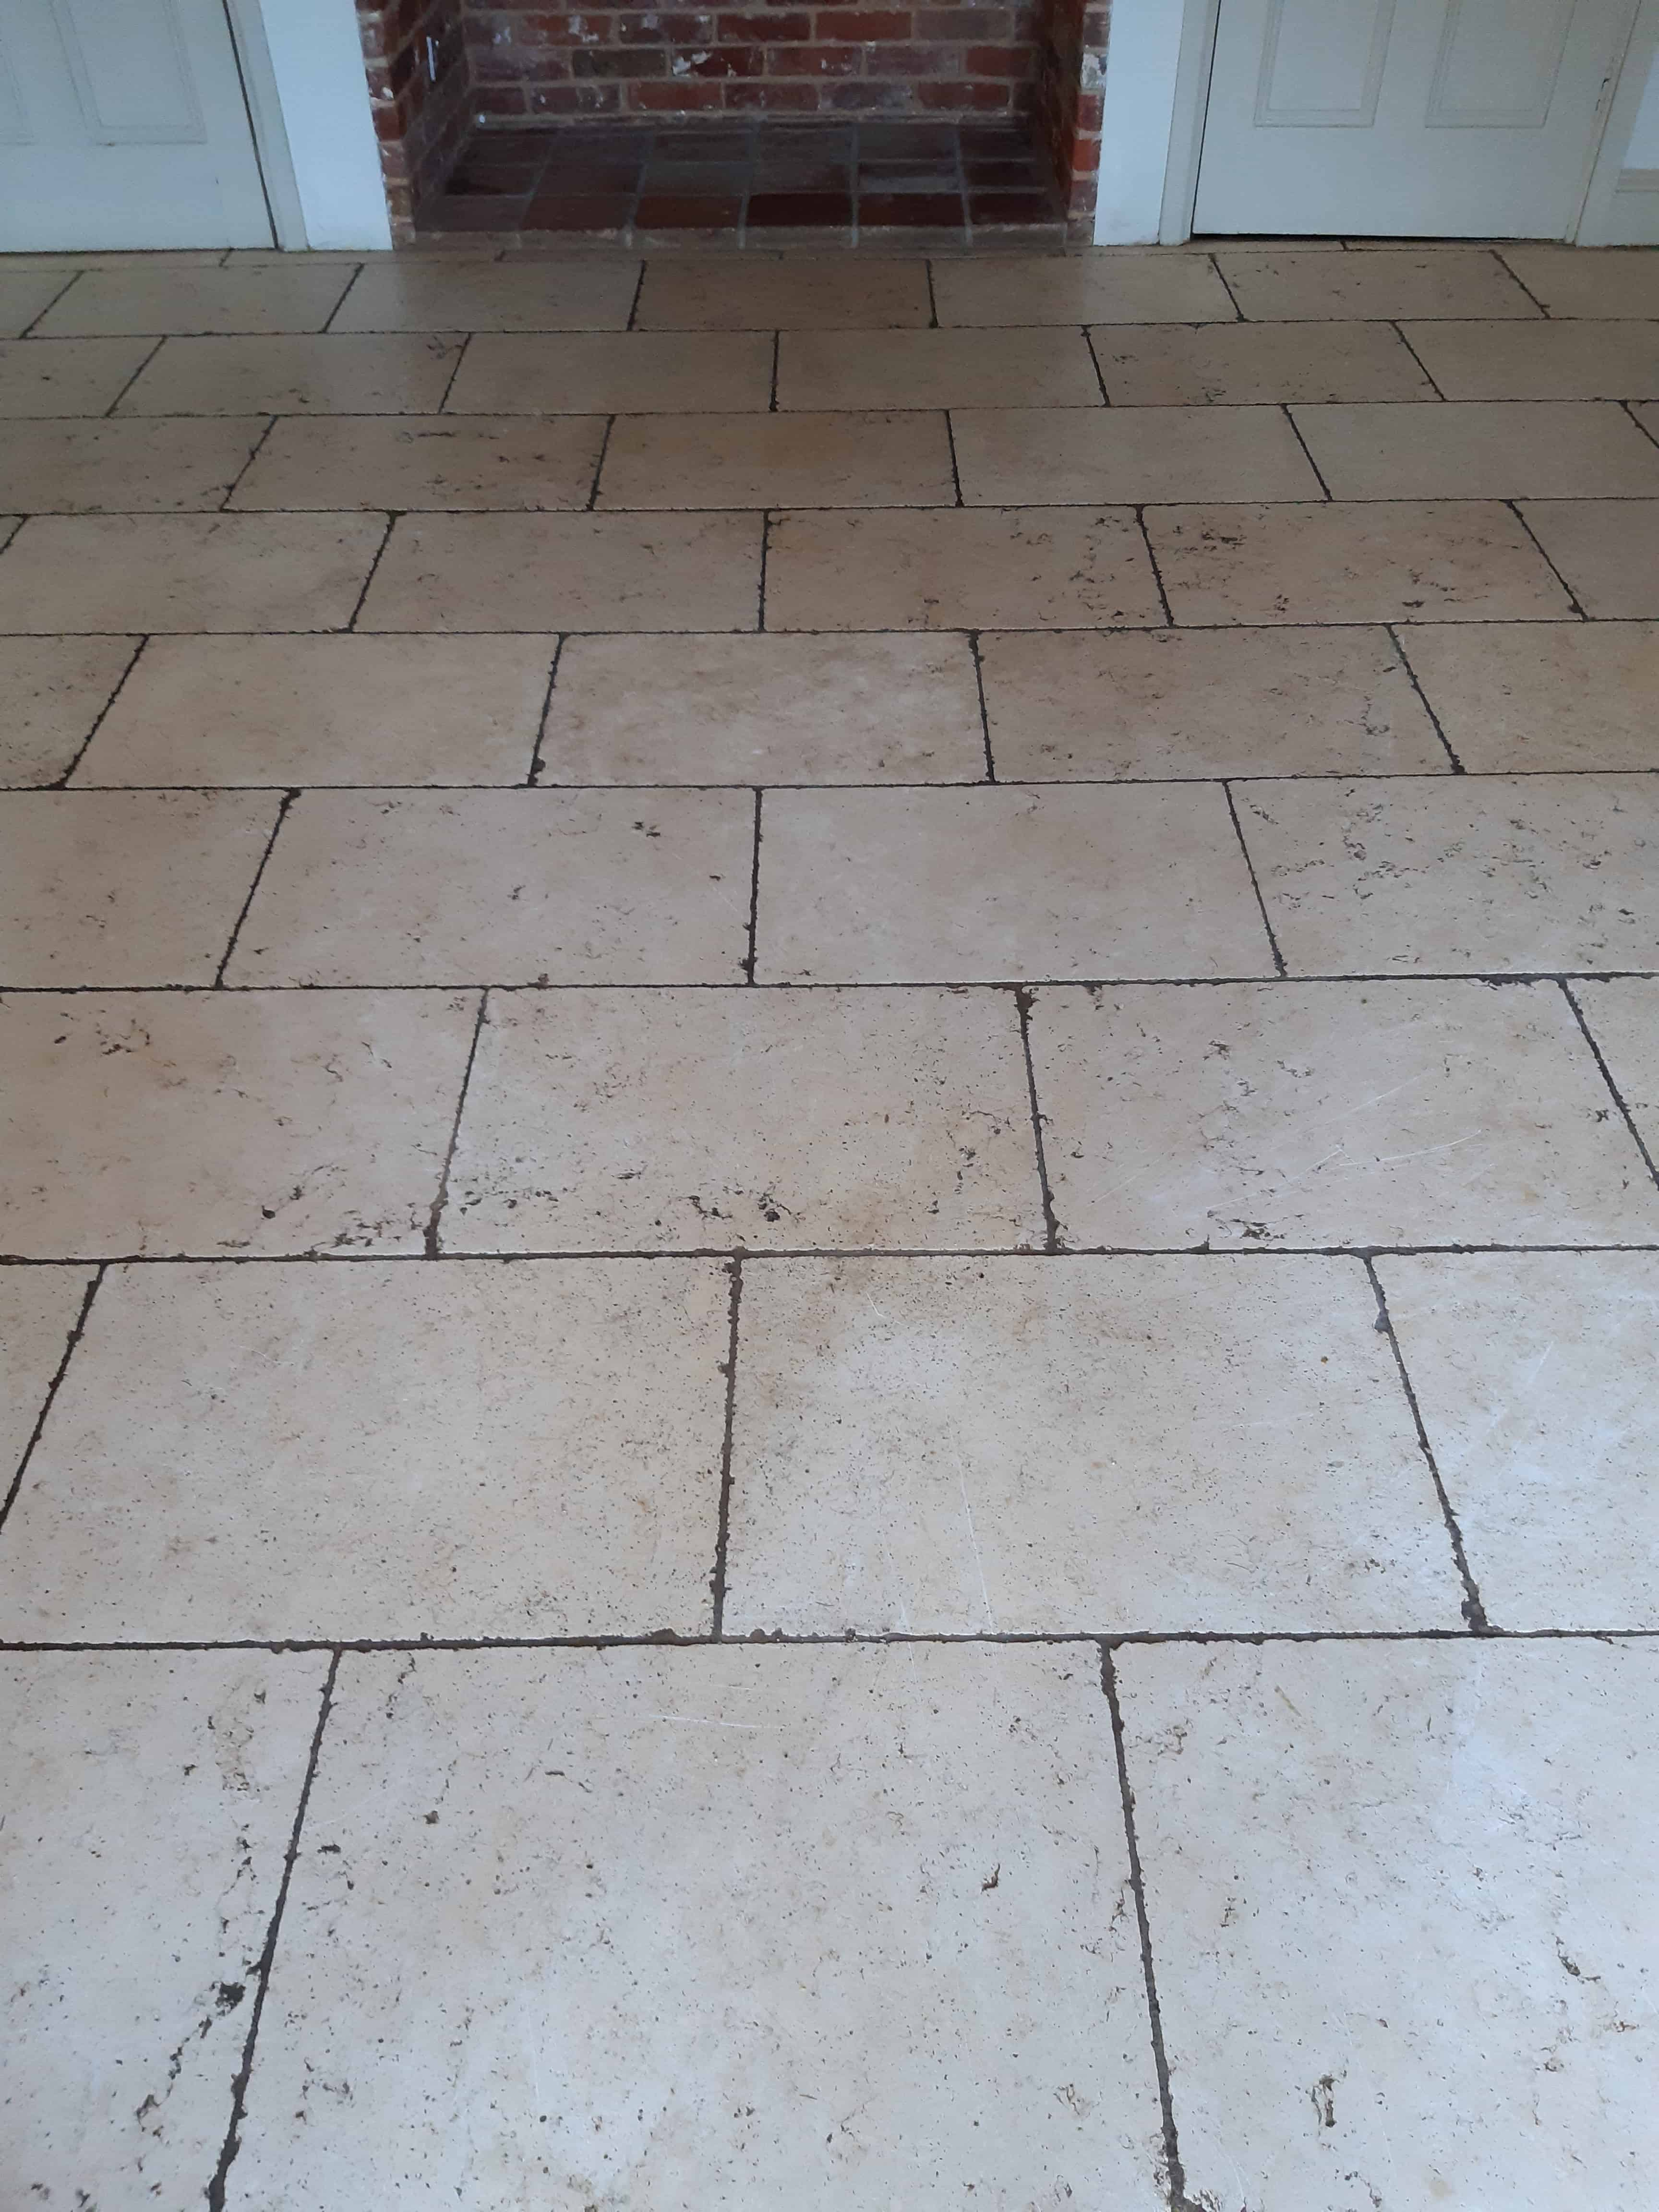 Limestone Flooring Before Renovation in Silfield